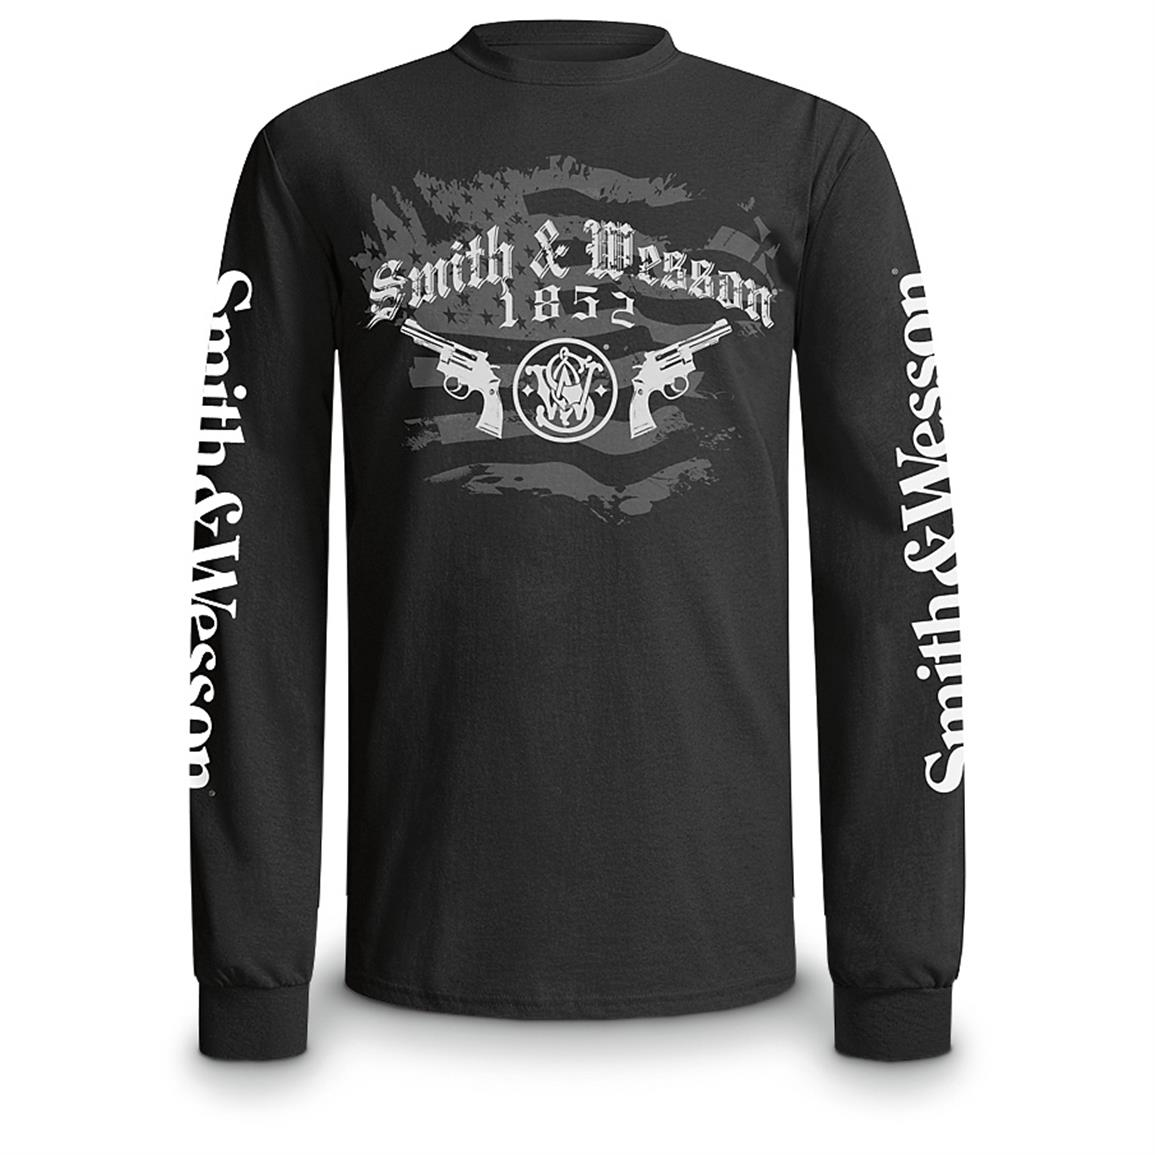 Smith & Wesson Long-sleeved T-shirt, Black